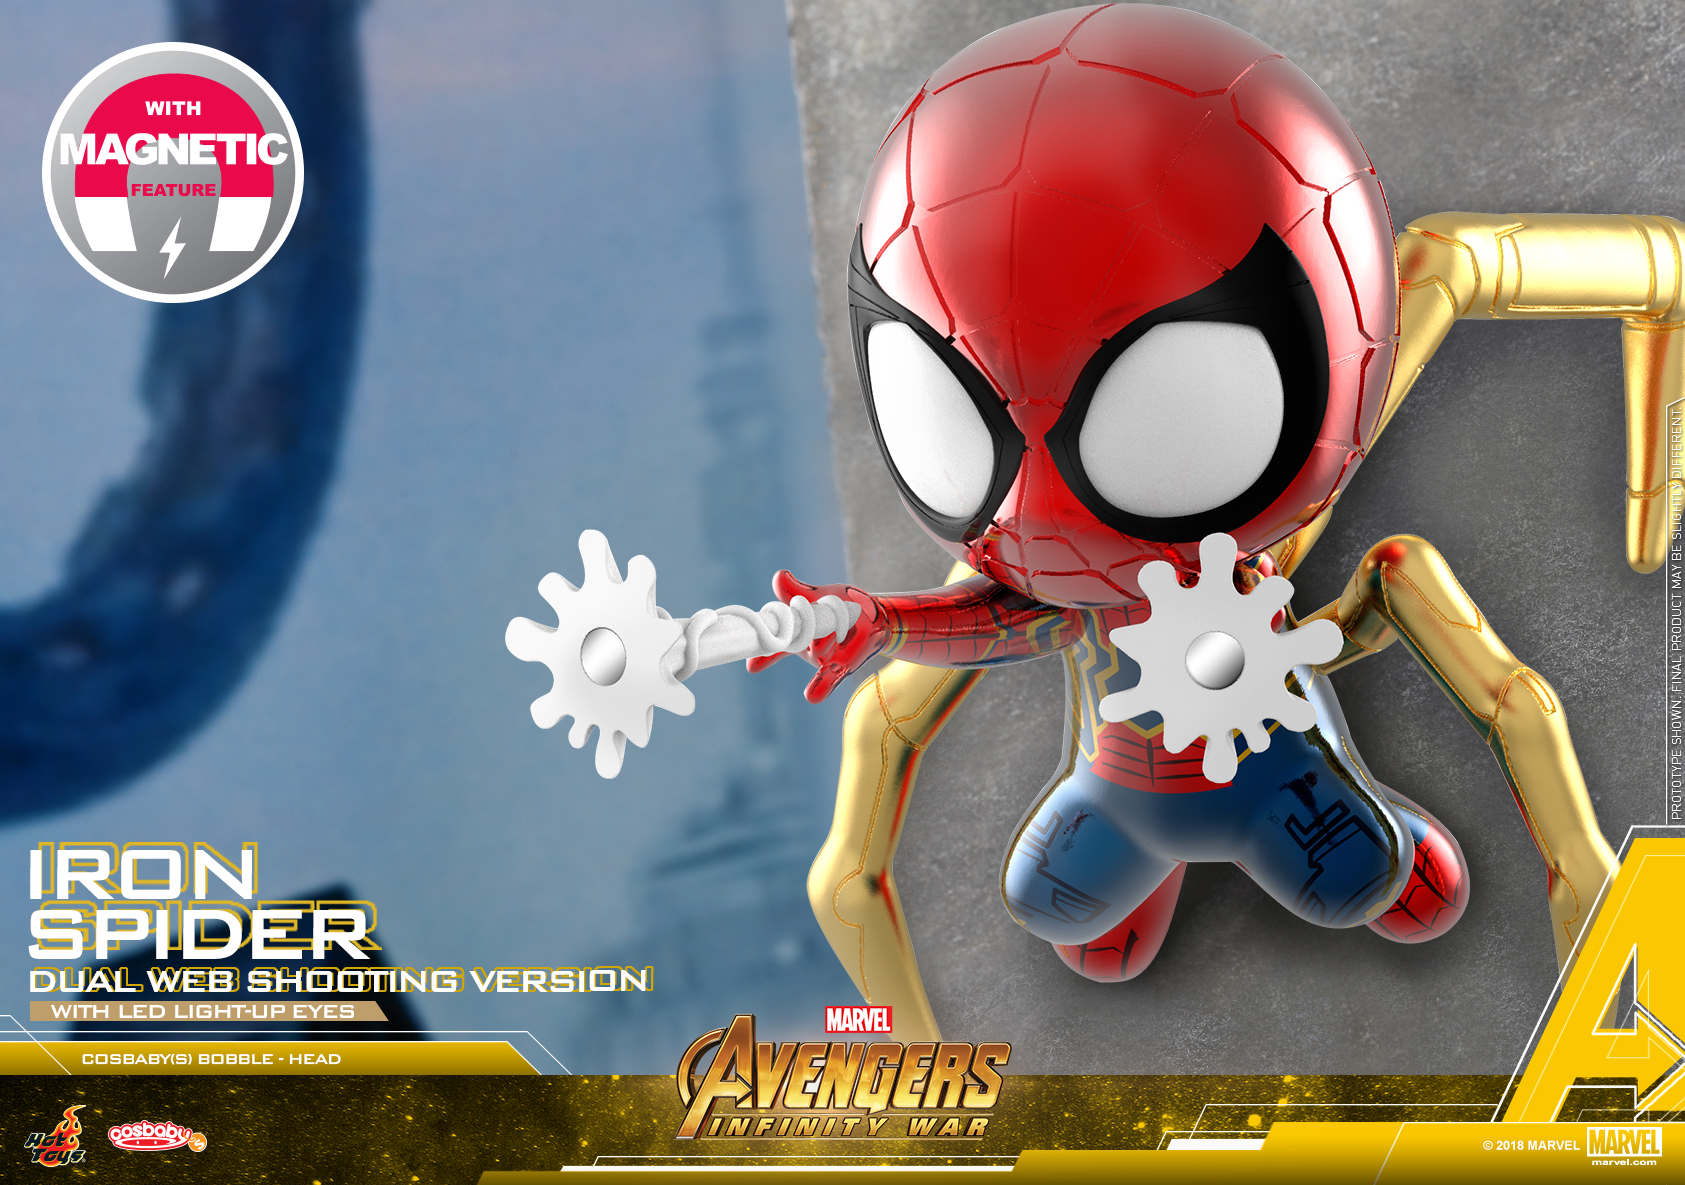 Hot Toys - Avengers 3 - Iron Spider (Dual Web Shooting Version) Cosbaby (S)_PR1